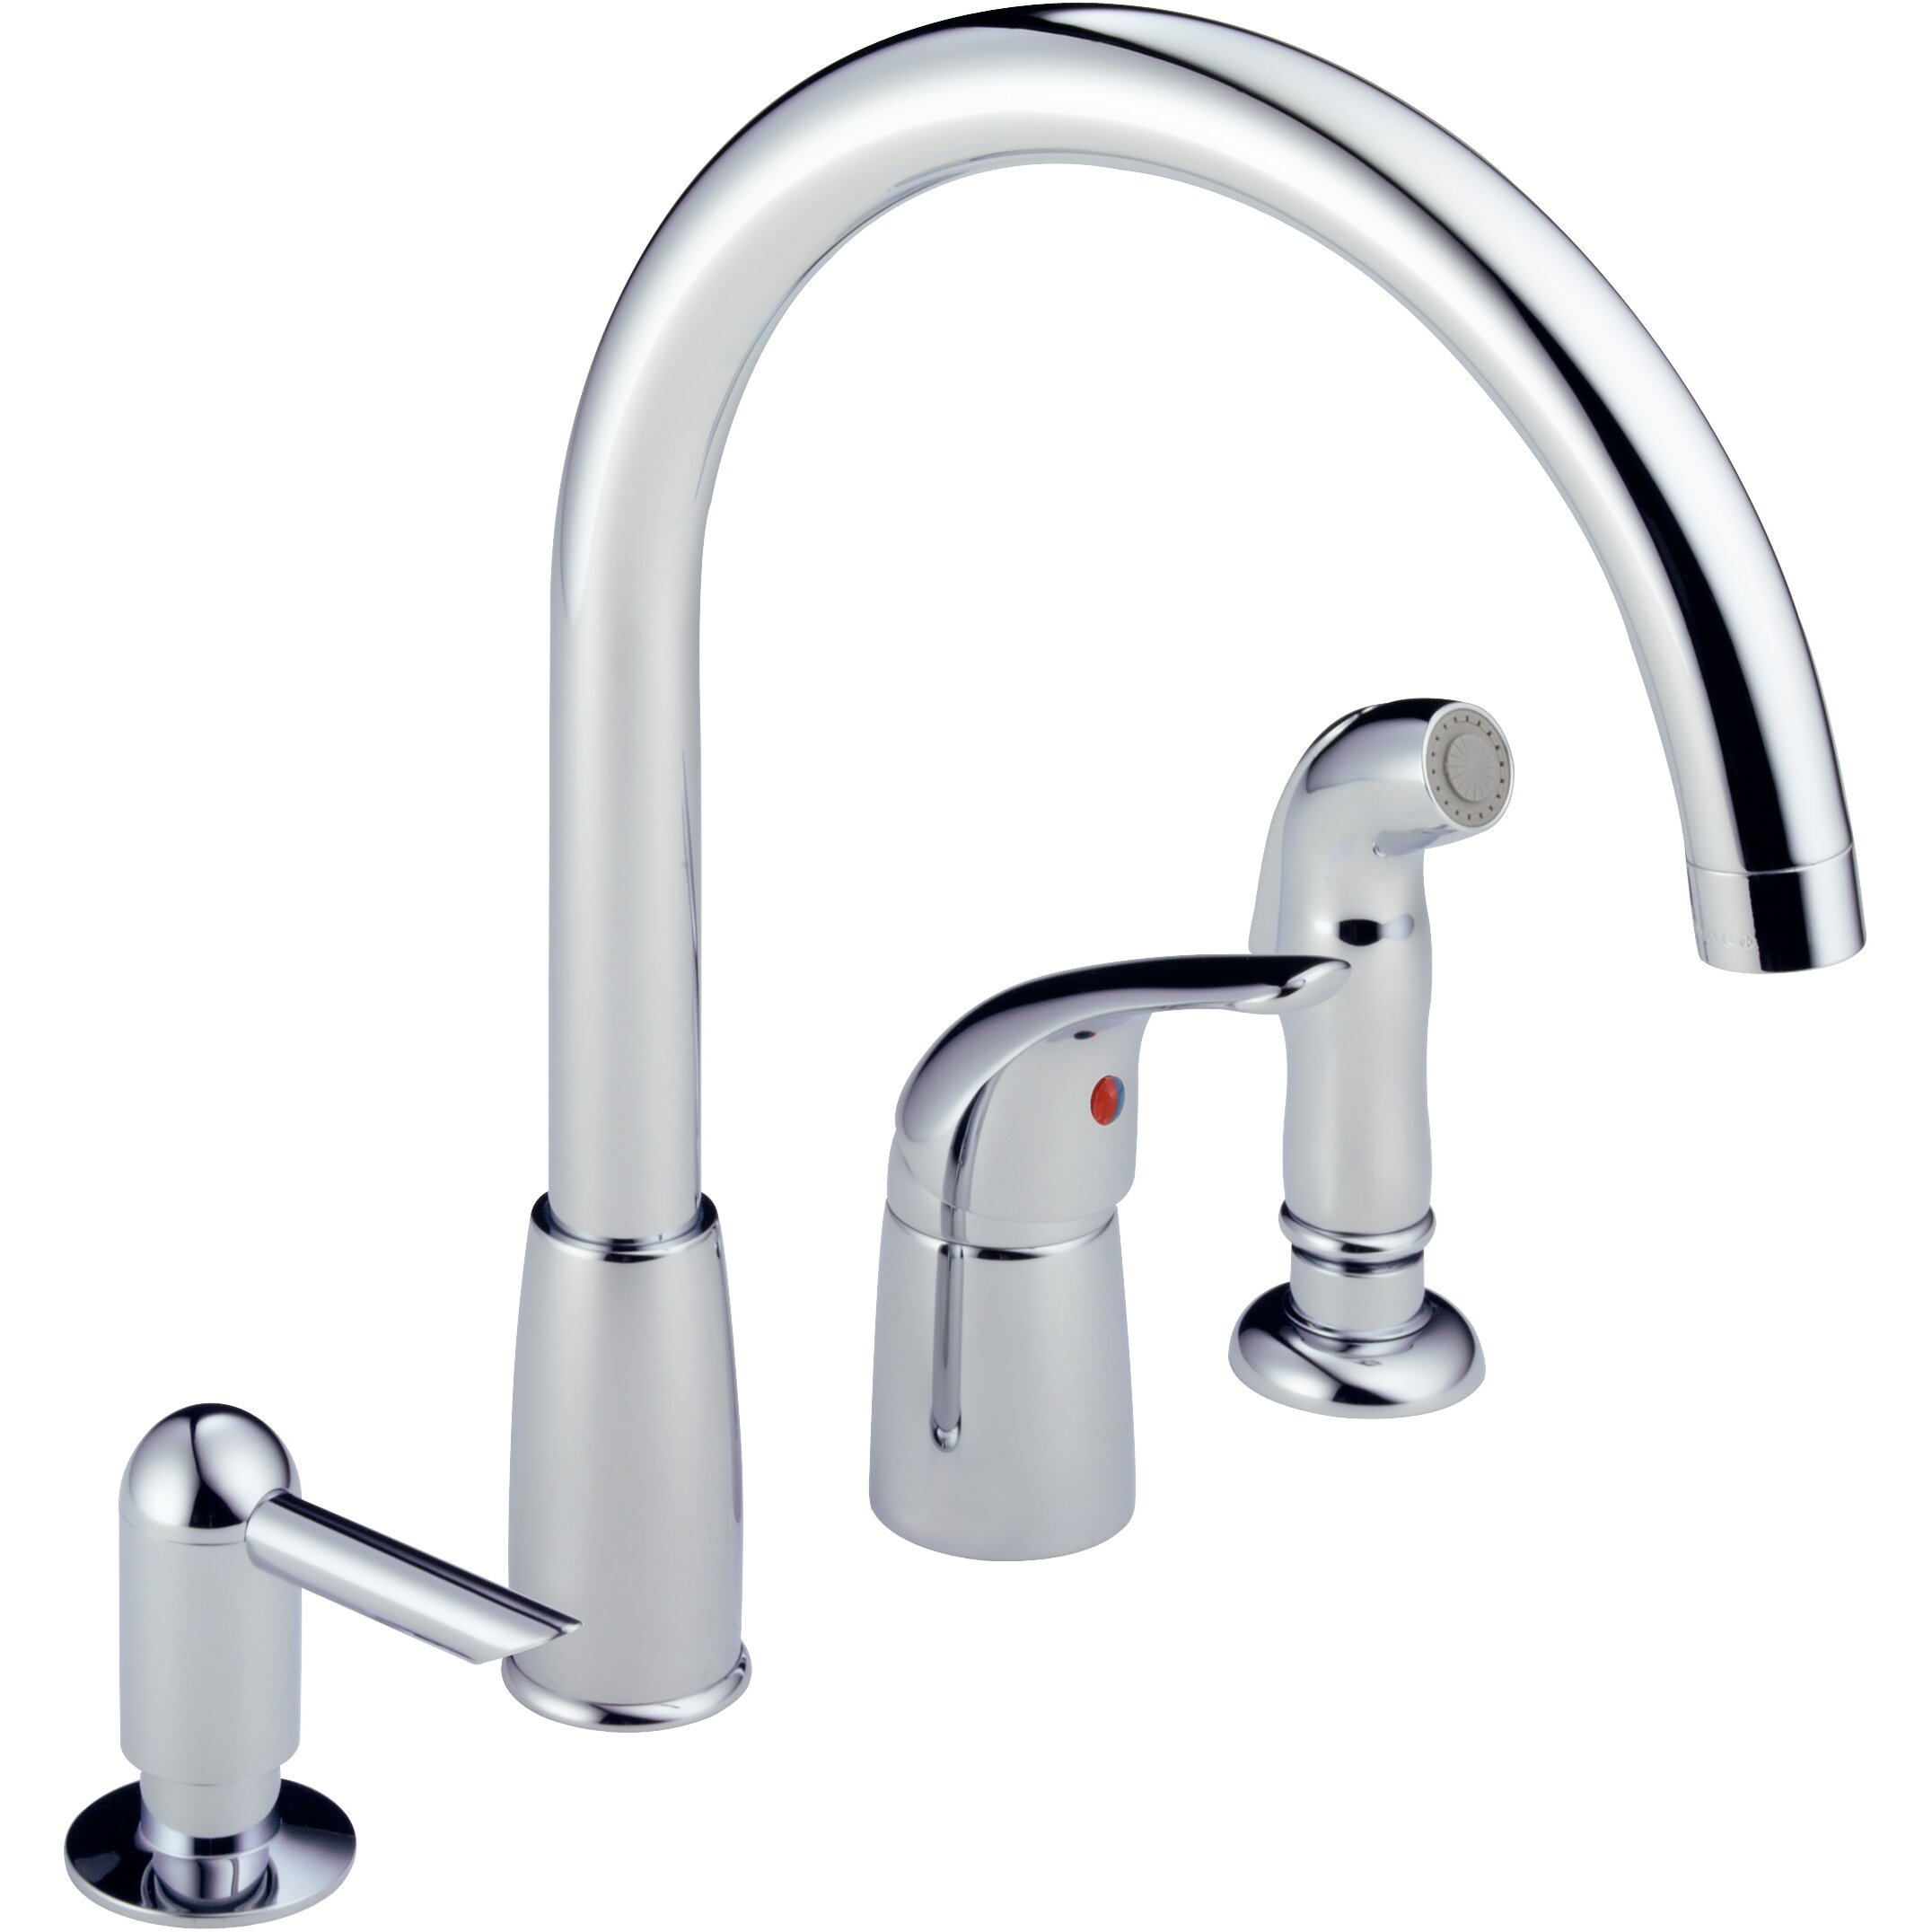 Peerless Kitchen Faucet With Soap Dispenser